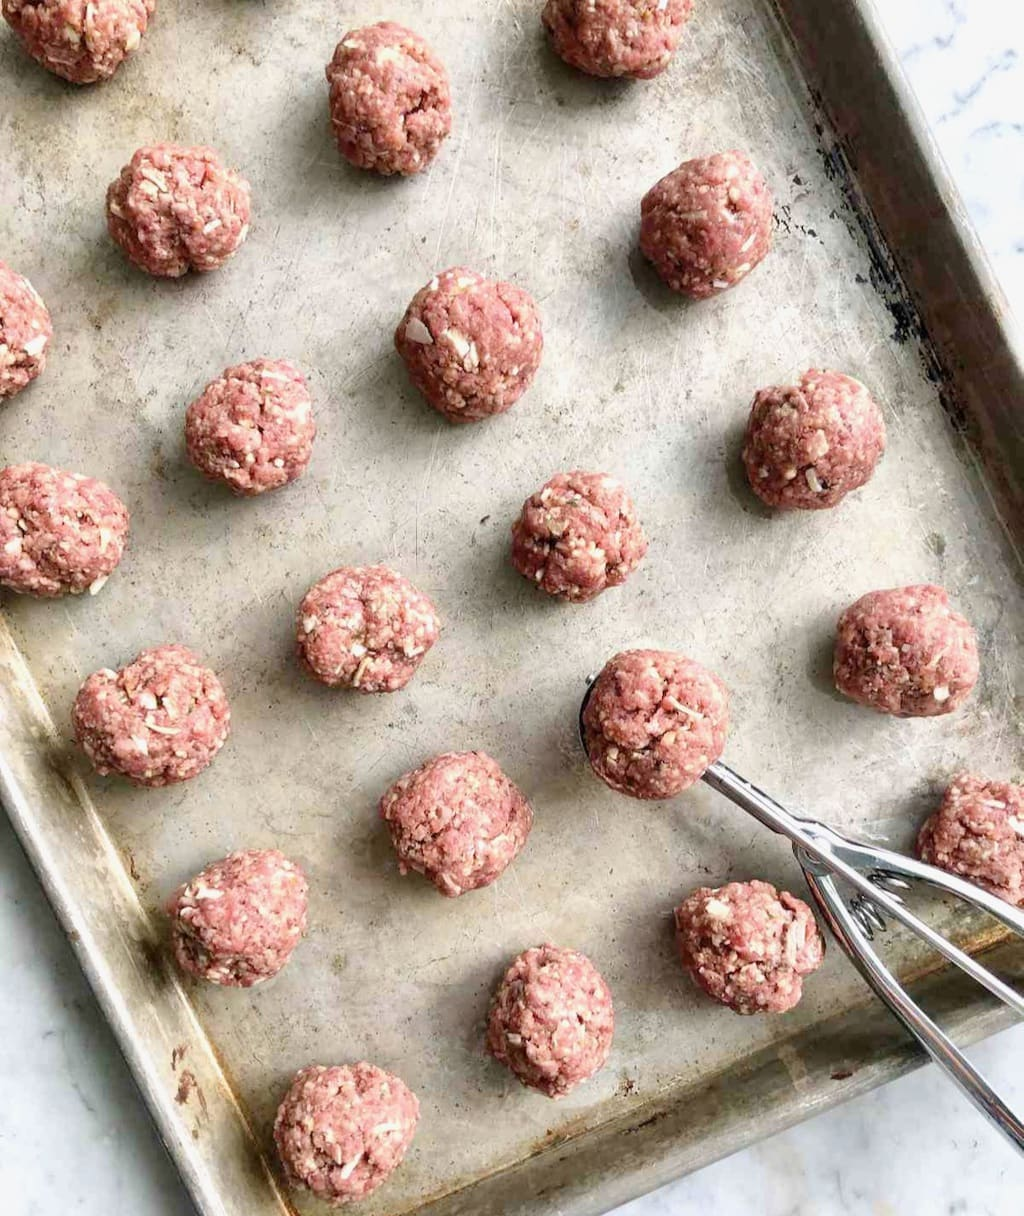 meatballs being rolled out on a sheet pan with a cookie scooper.